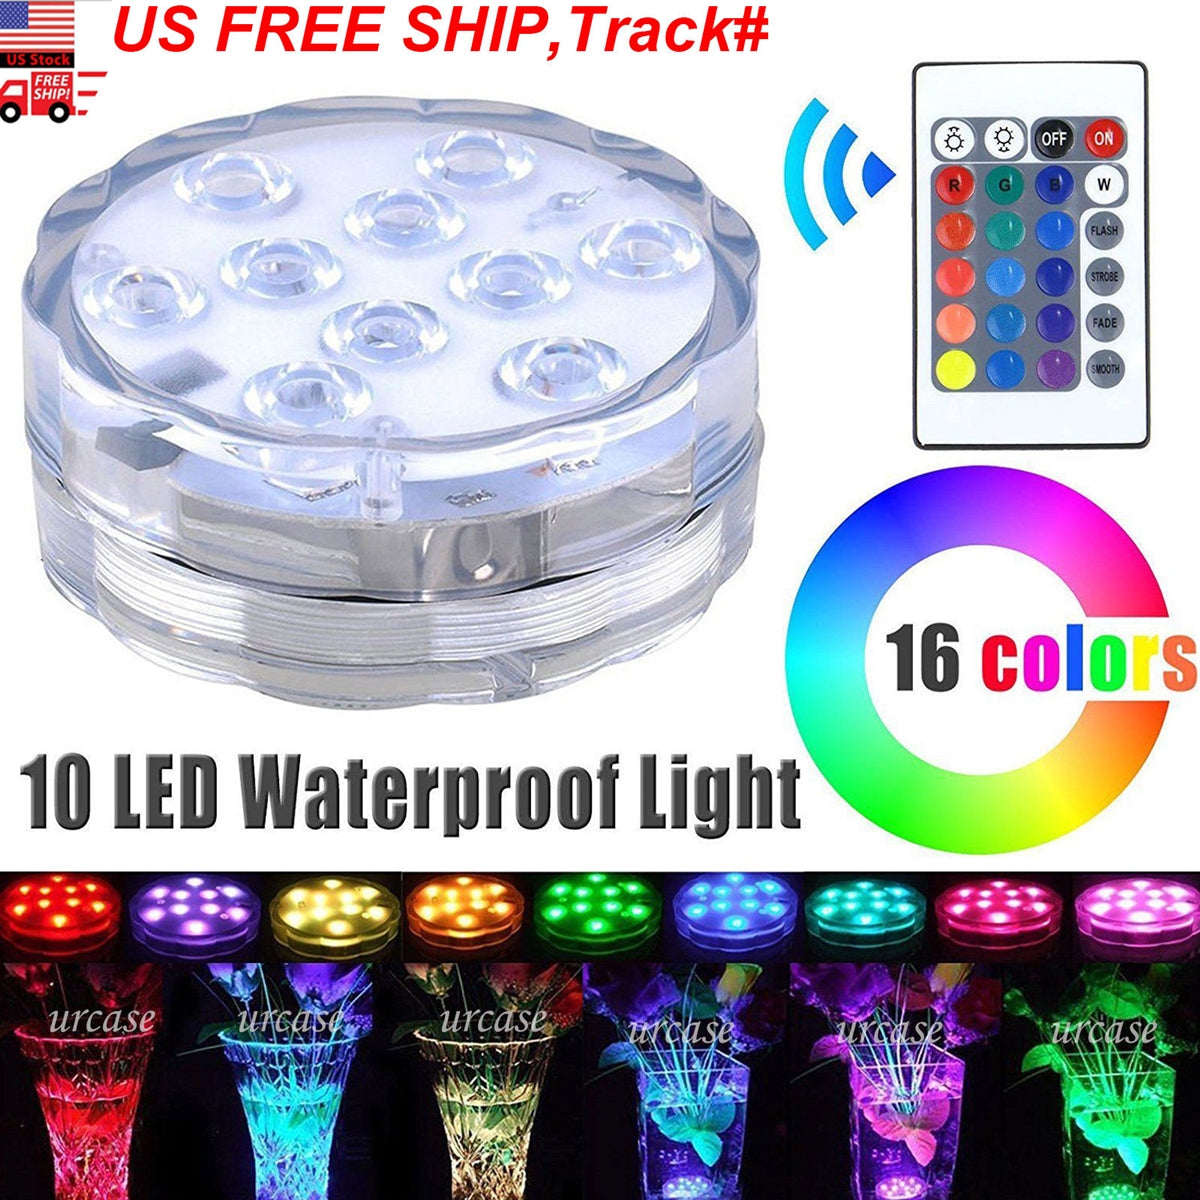 10 LED RGB Waterproof Submersible Lights Wedding Party Vase Lamp + Remote